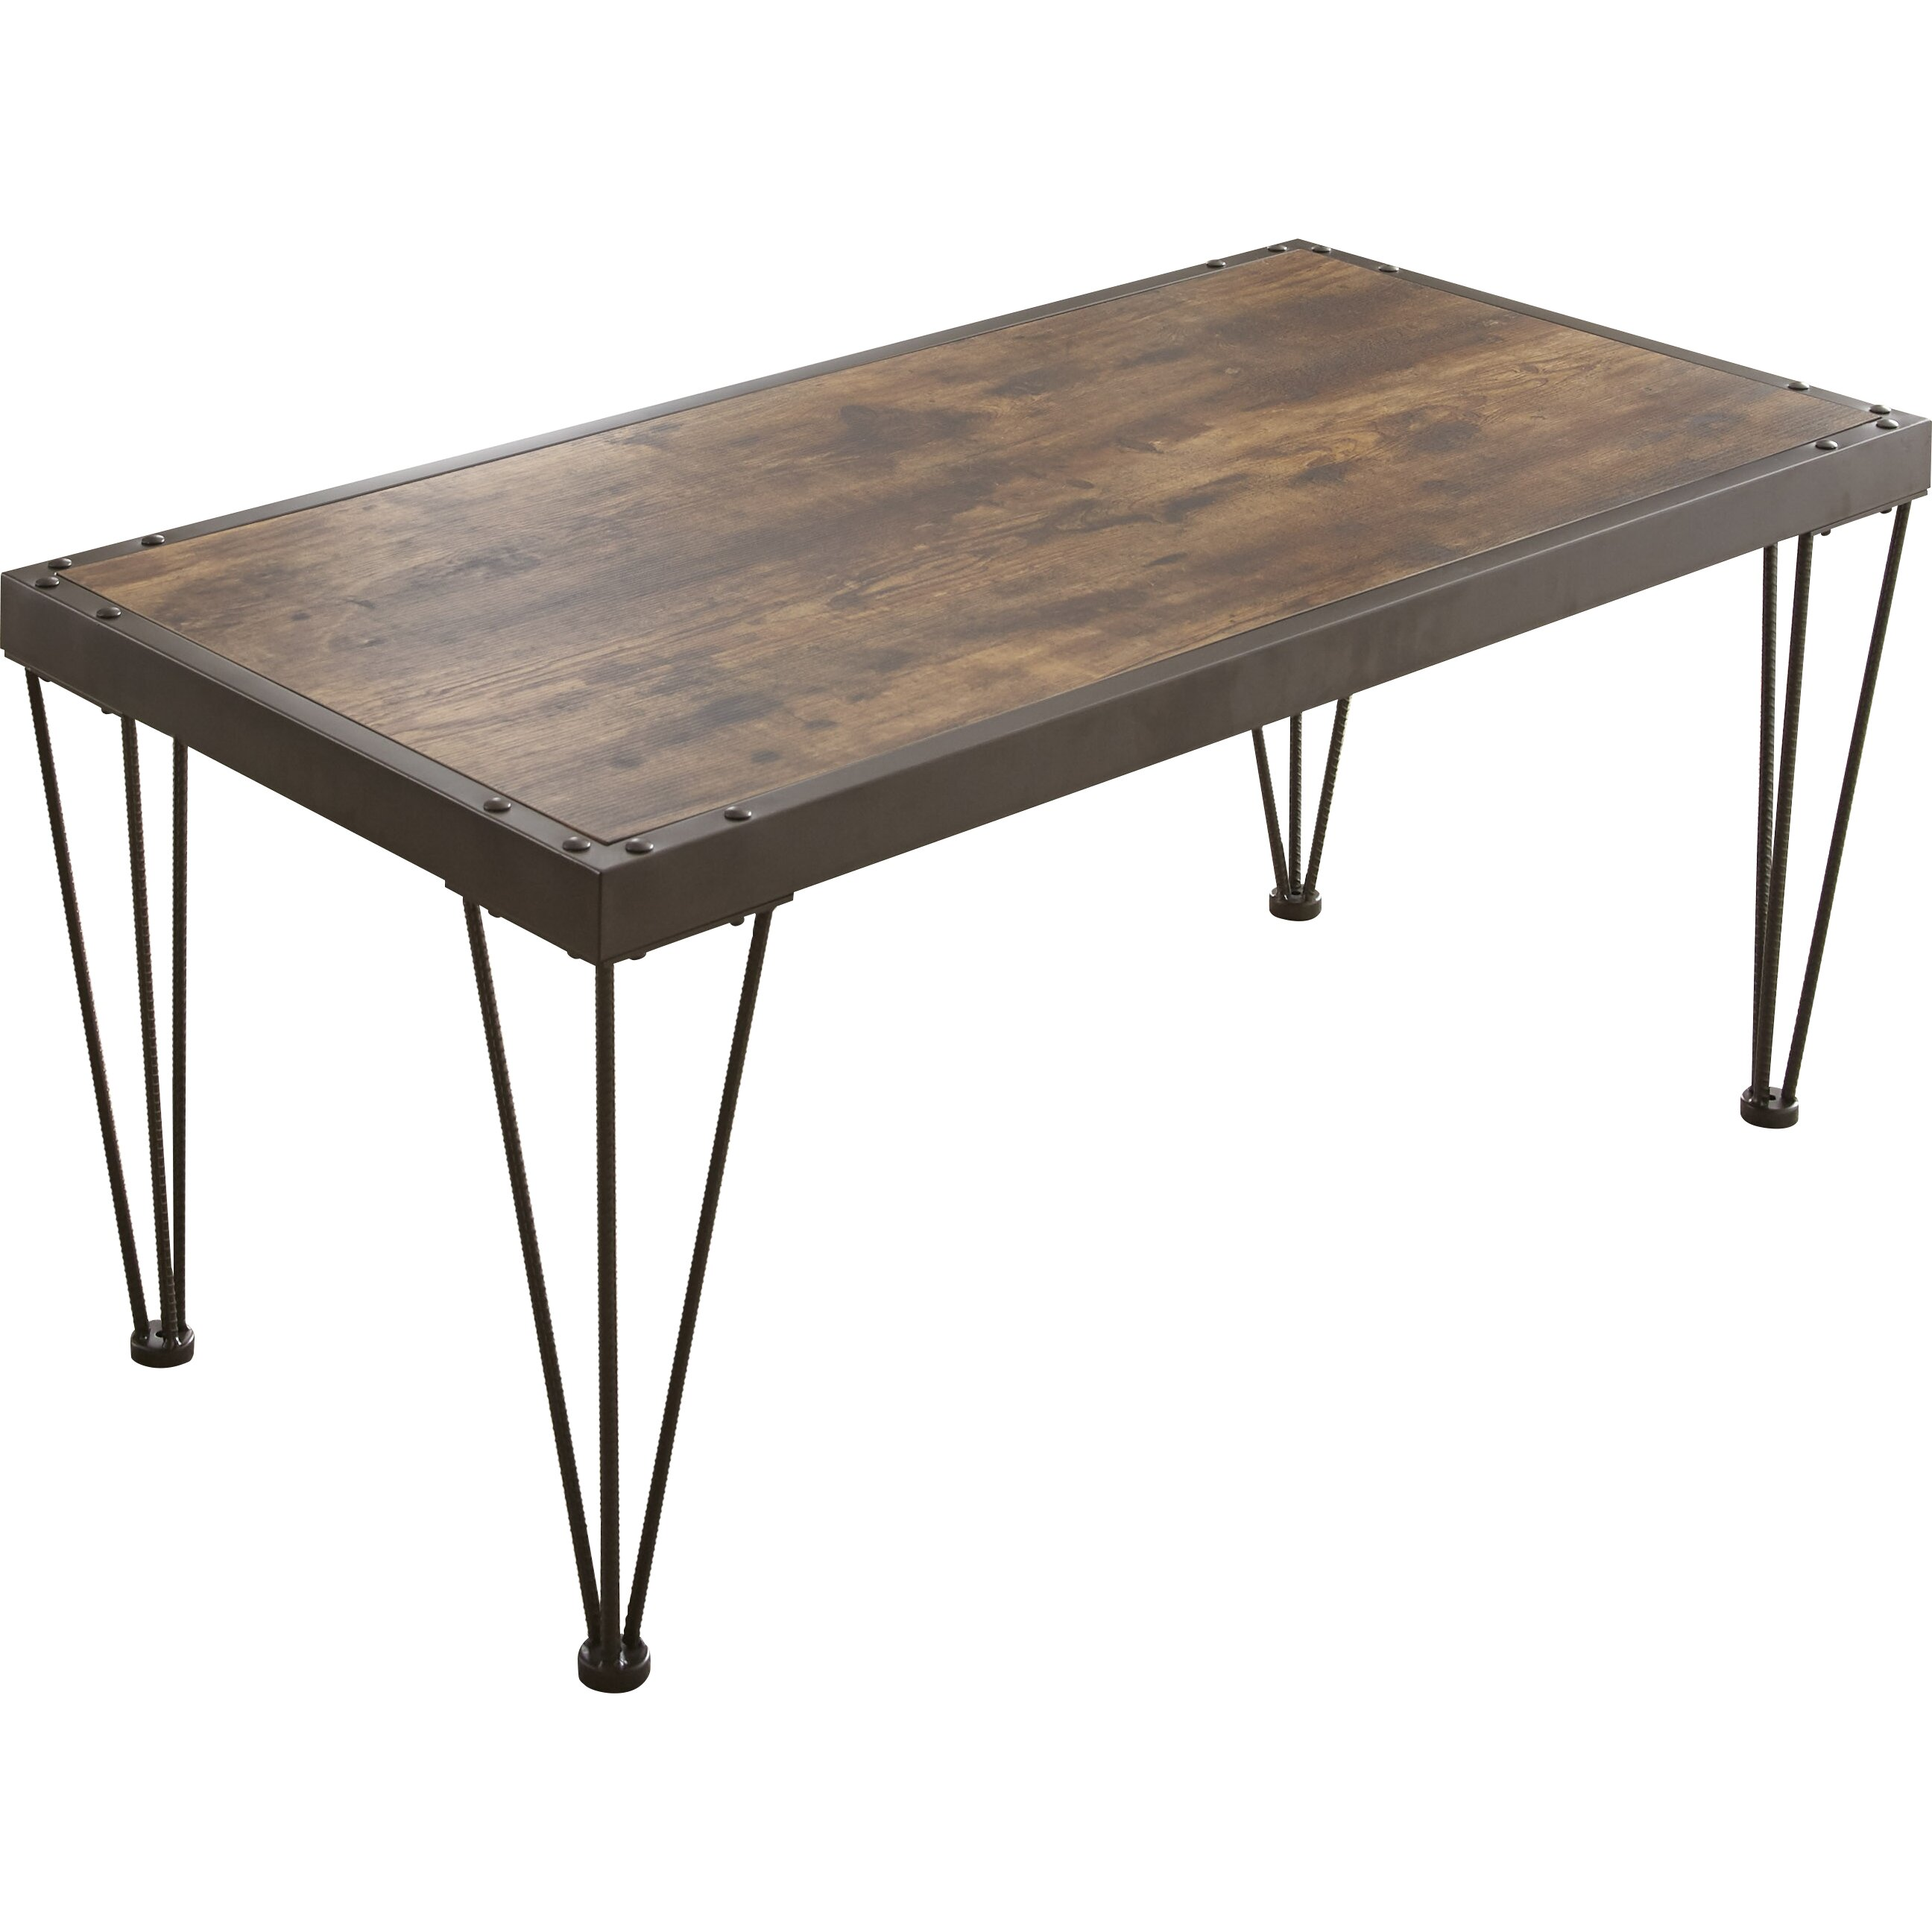 Laurel foundry modern farmhouse owen coffee table for Modern farmhouse coffee table